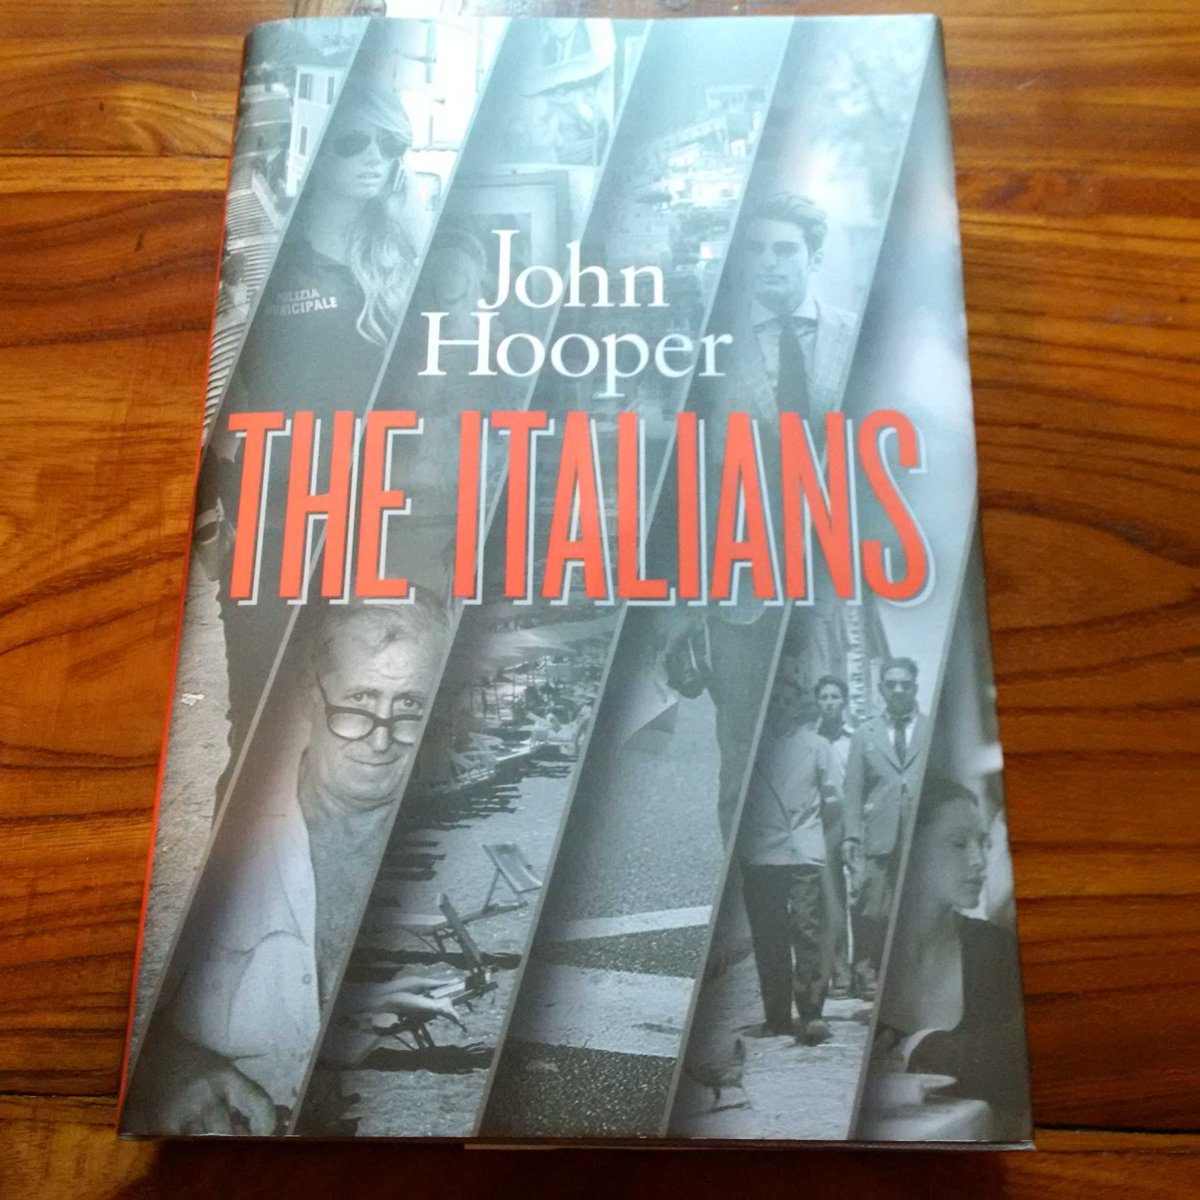 Out Thursday, I now have a copy of John Hooper's new book The Italians - all about sublime and exasperating Italy. http://t.co/Q61TRjbxdM